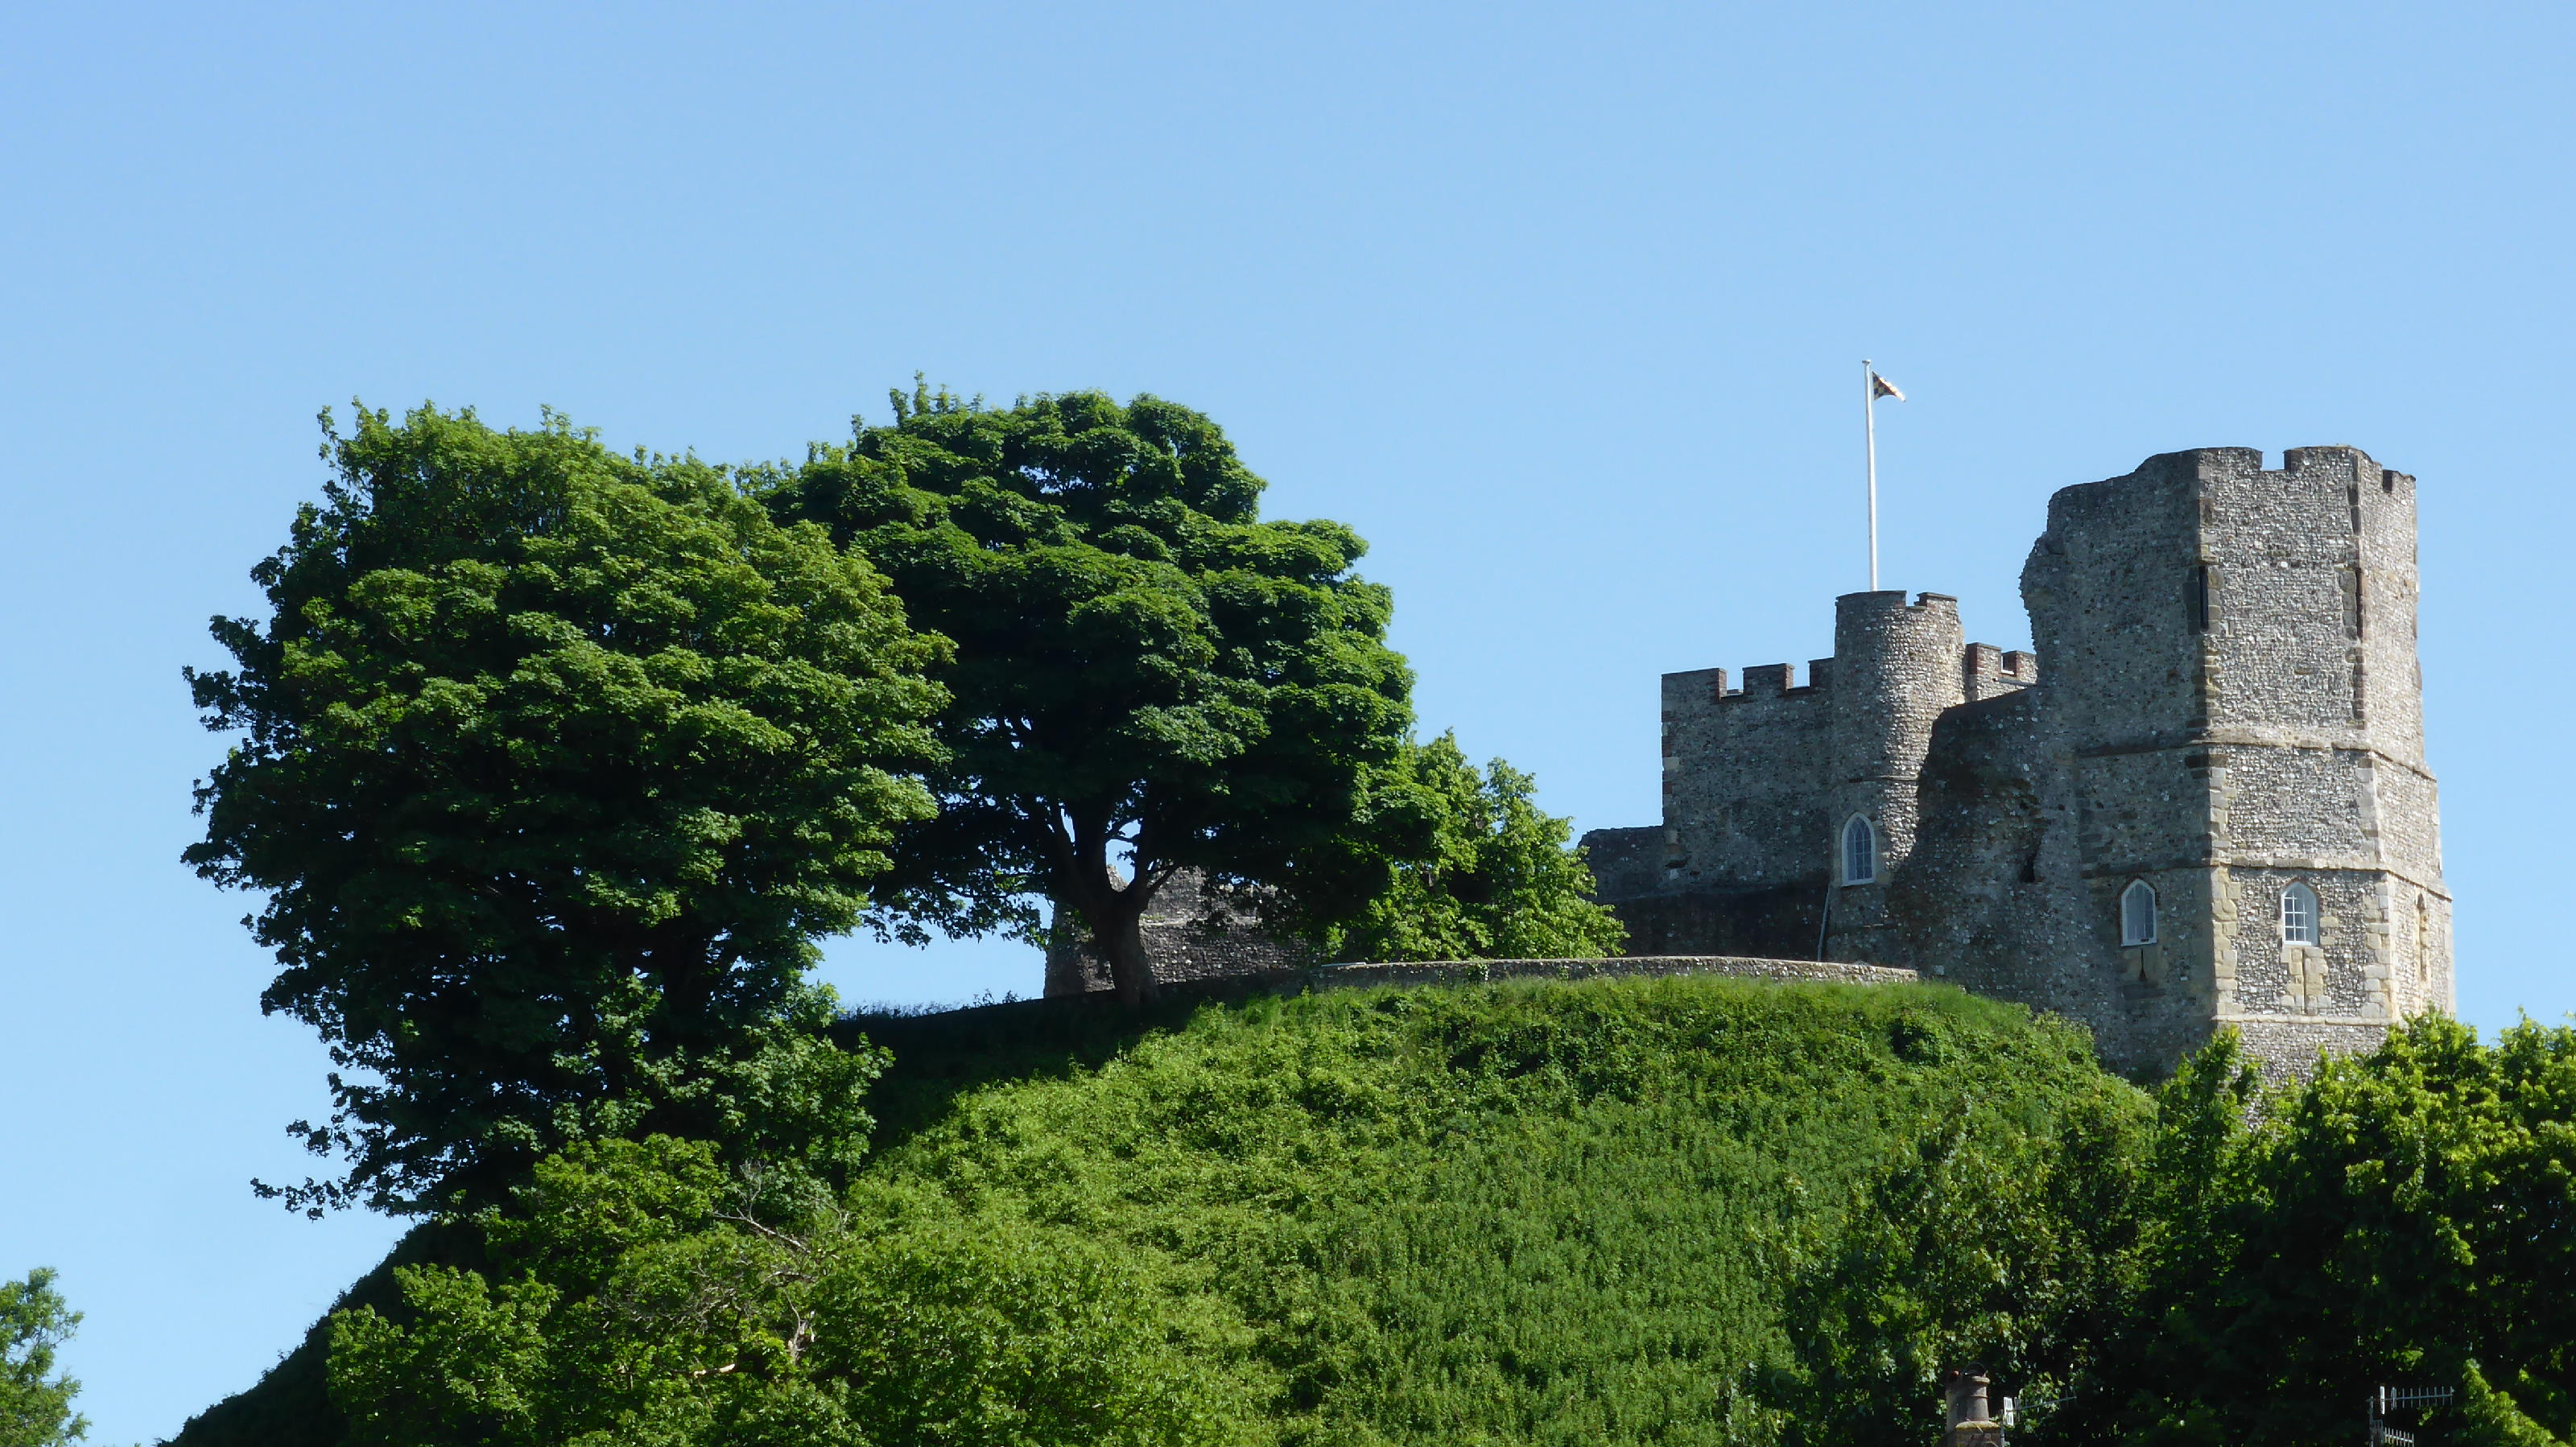 LEWES CASTLE by Robert Hill